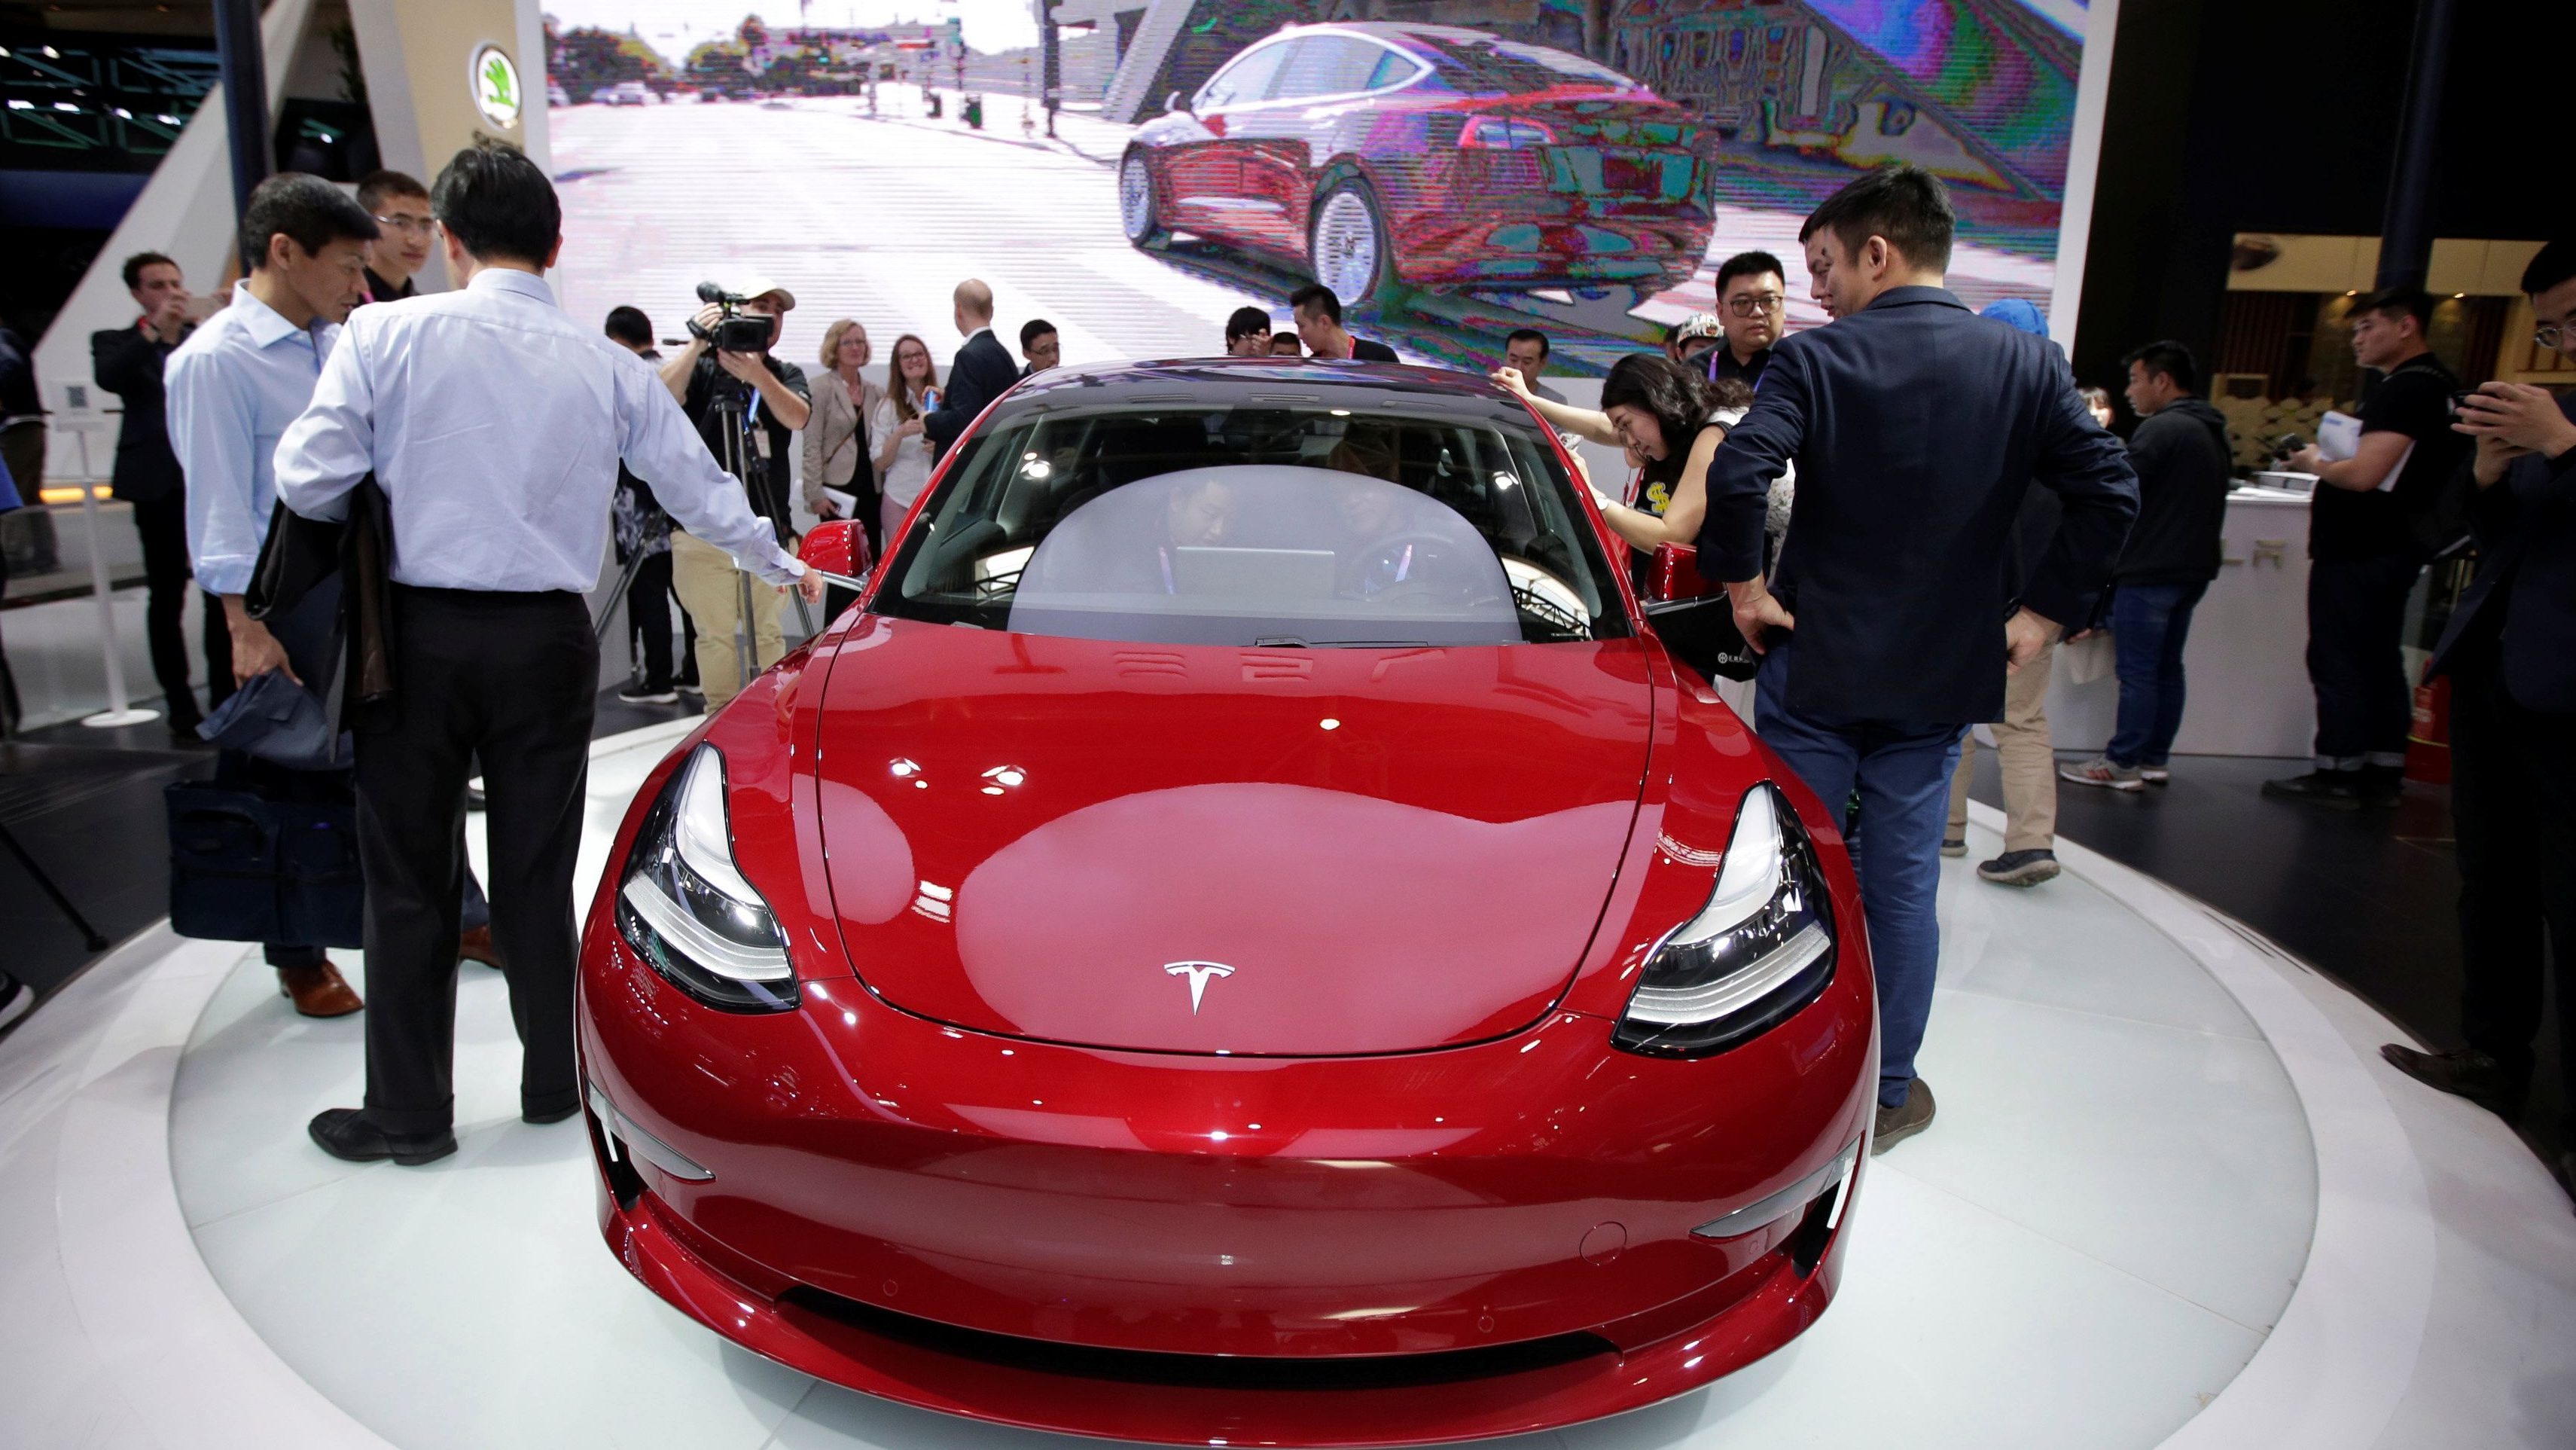 A Tesla in China will cost $20,000 more because of the US